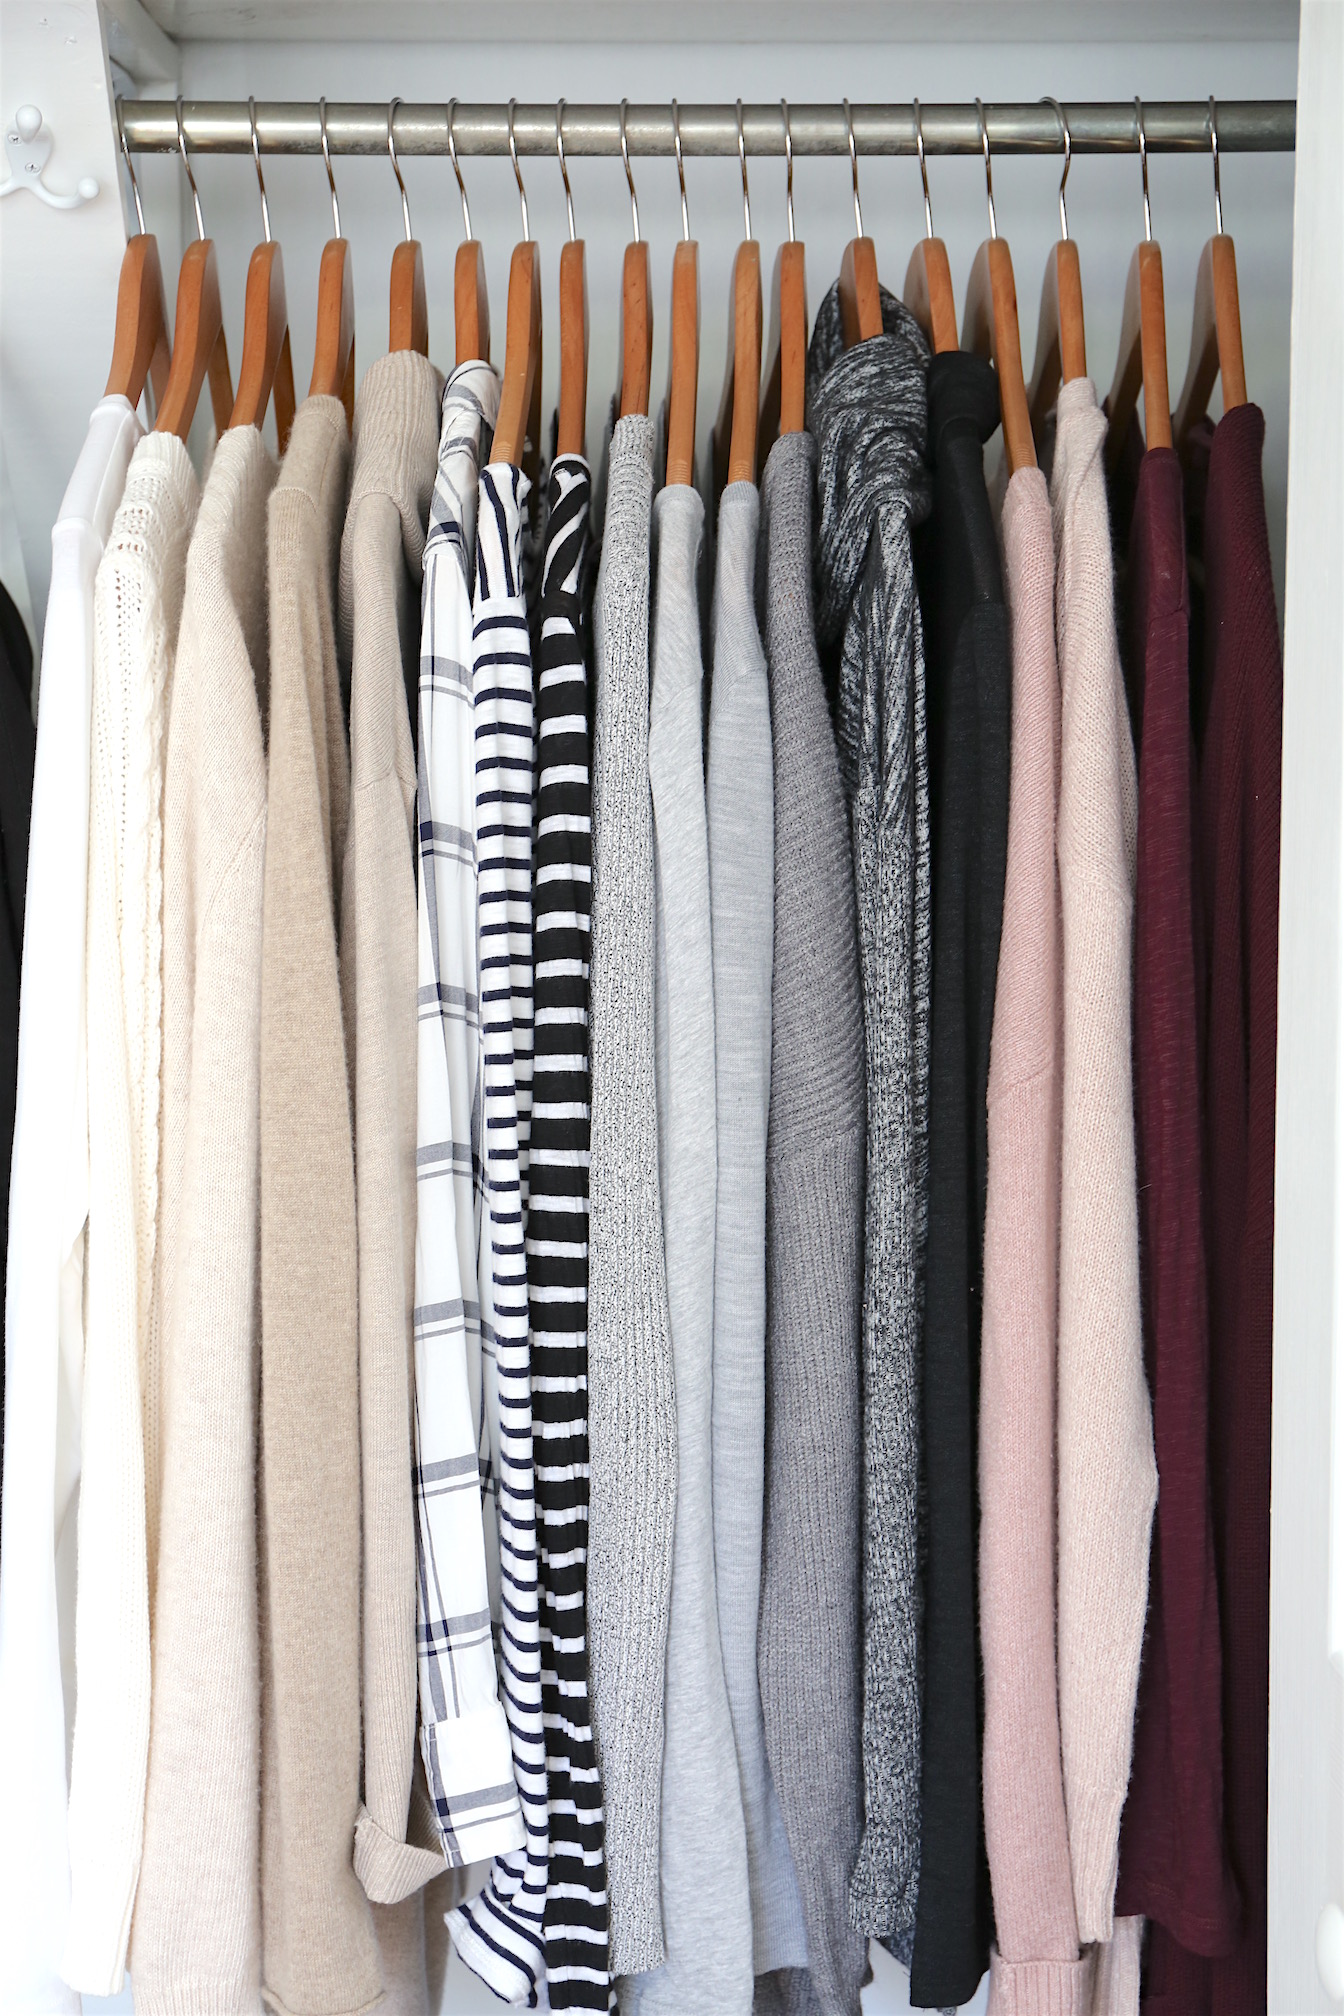 Winter 2017 Capsule Wardrobe - Tops